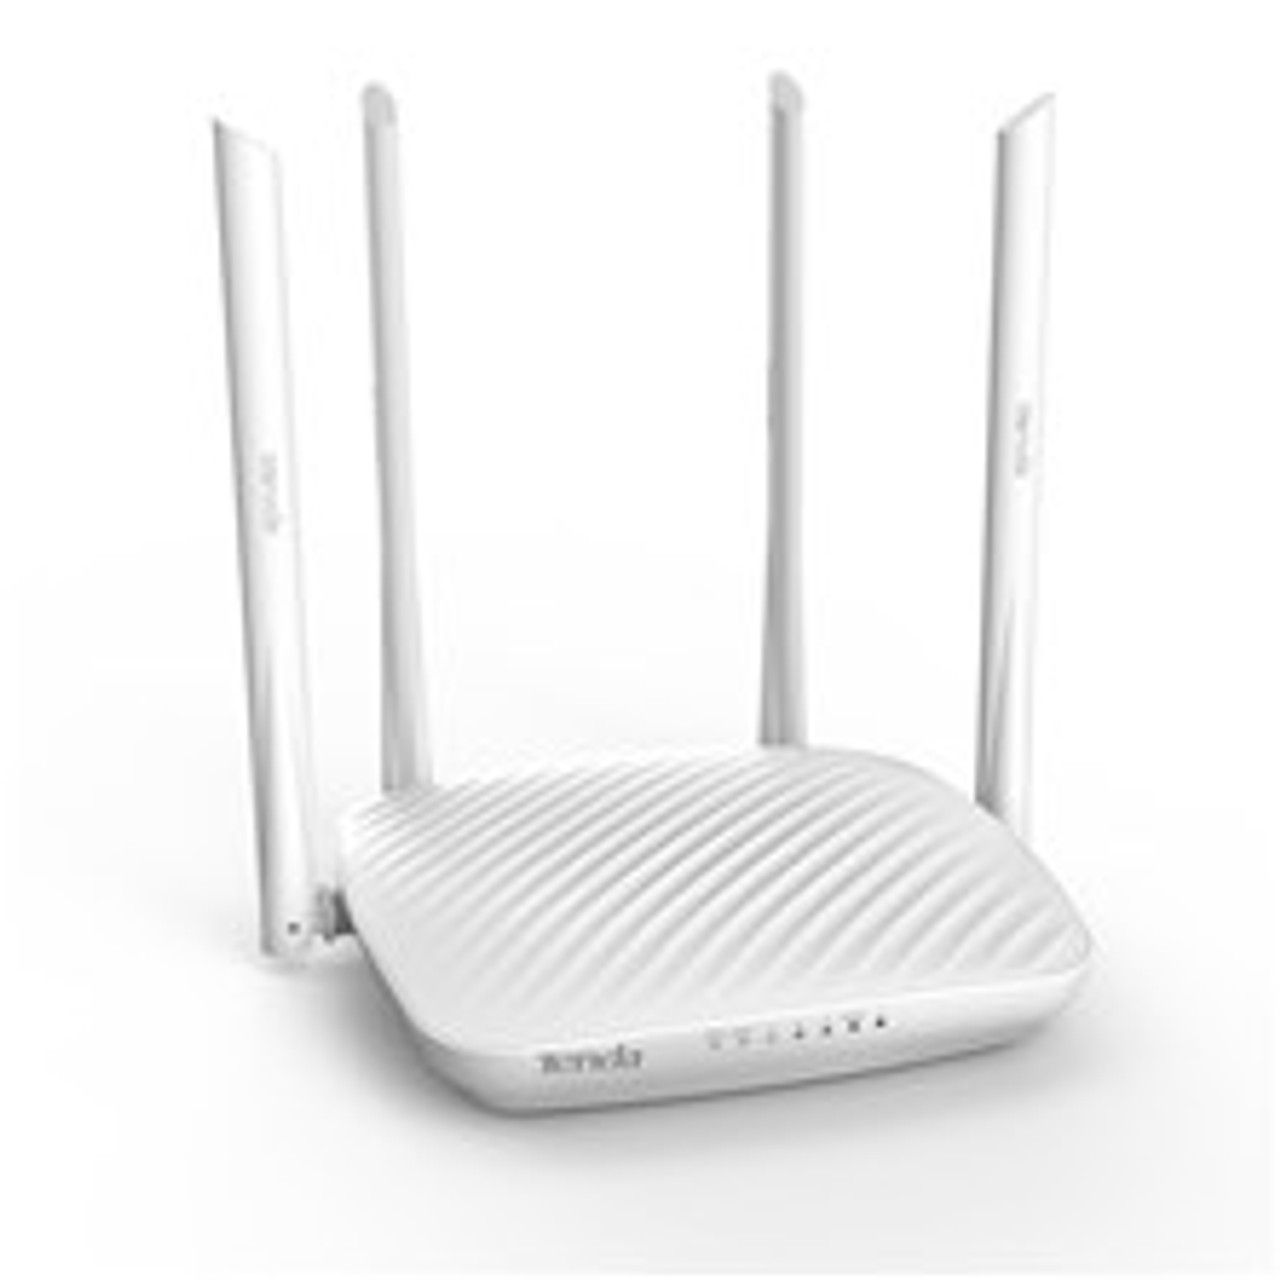 Tenda F9 600Mbps Whole-Home Coverage WiFi Router with 4 x 6dBi High-gain Omnidirectional Antennas/Beamforming+/Easy Setup/App Control (F9)